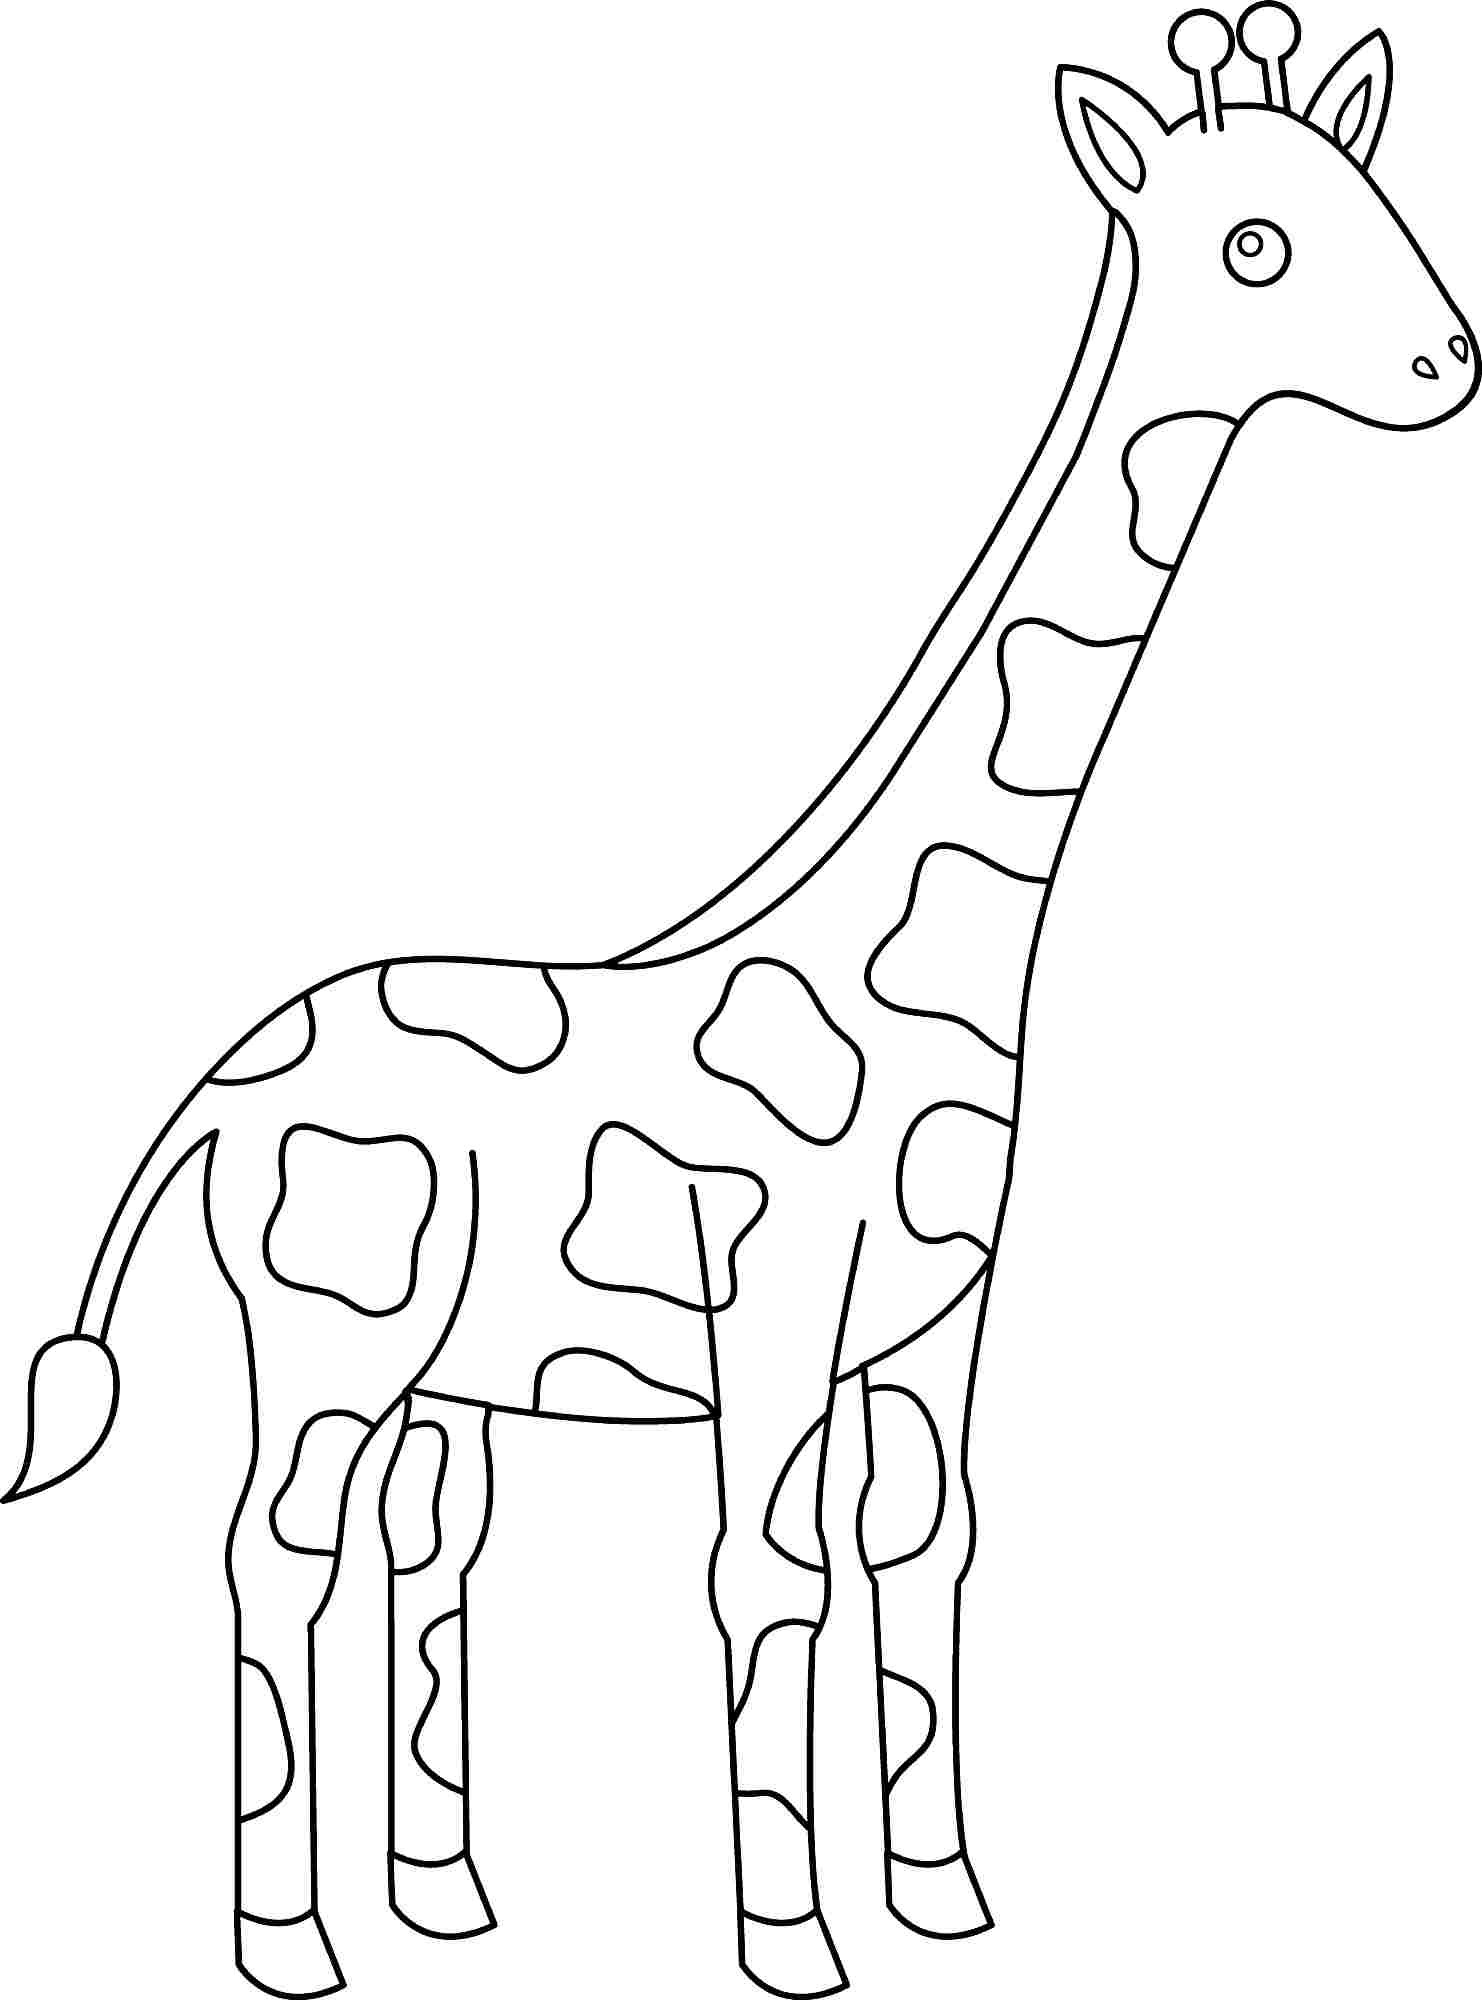 coloring pages giraffe animal coloring pages giraffe at getdrawings free download coloring giraffe pages